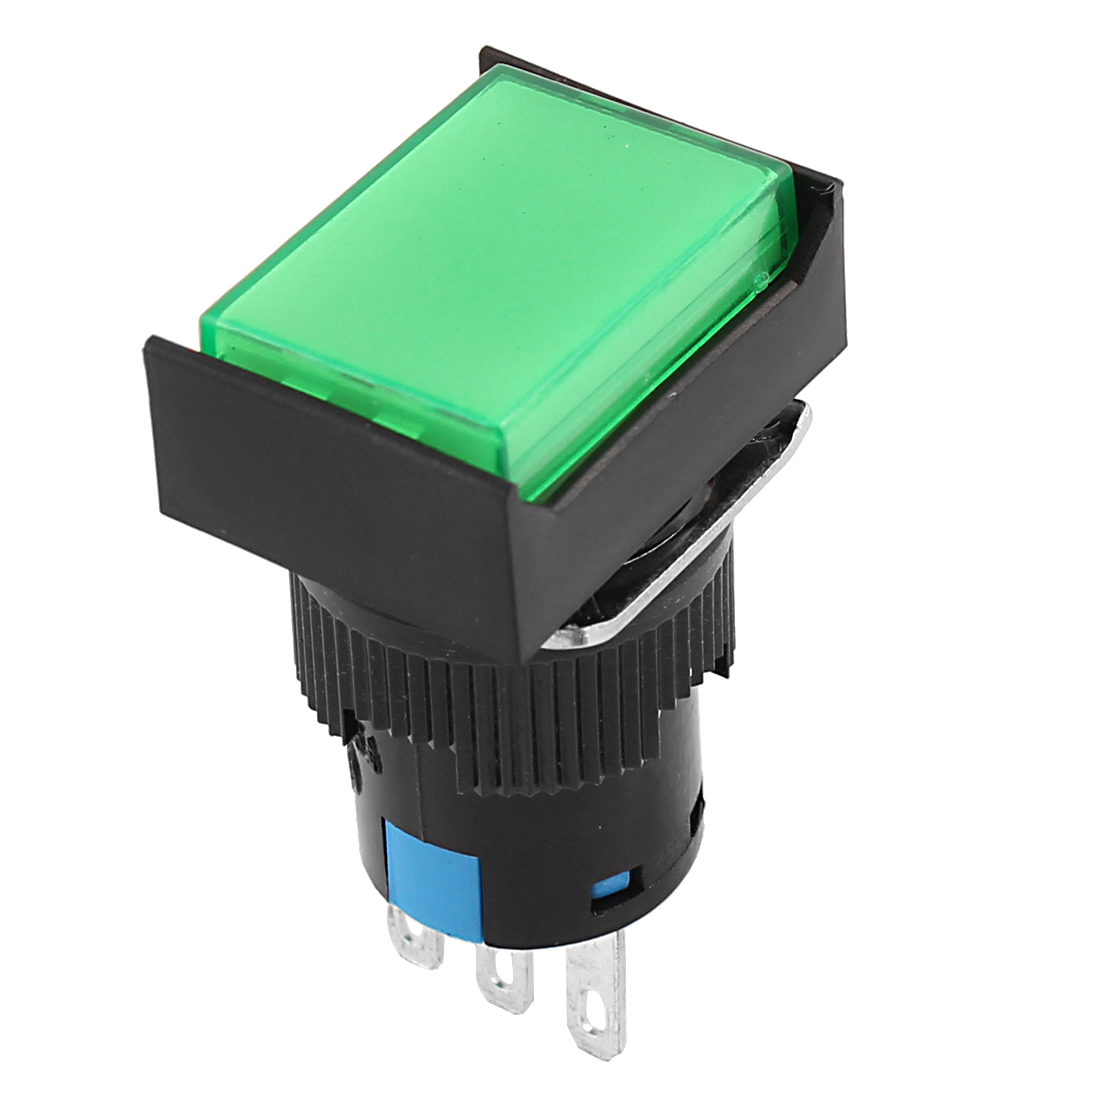 AC 250V 5A/16A SPDT 16mm Thread Dia Green Cap Momentary Push Button Switch